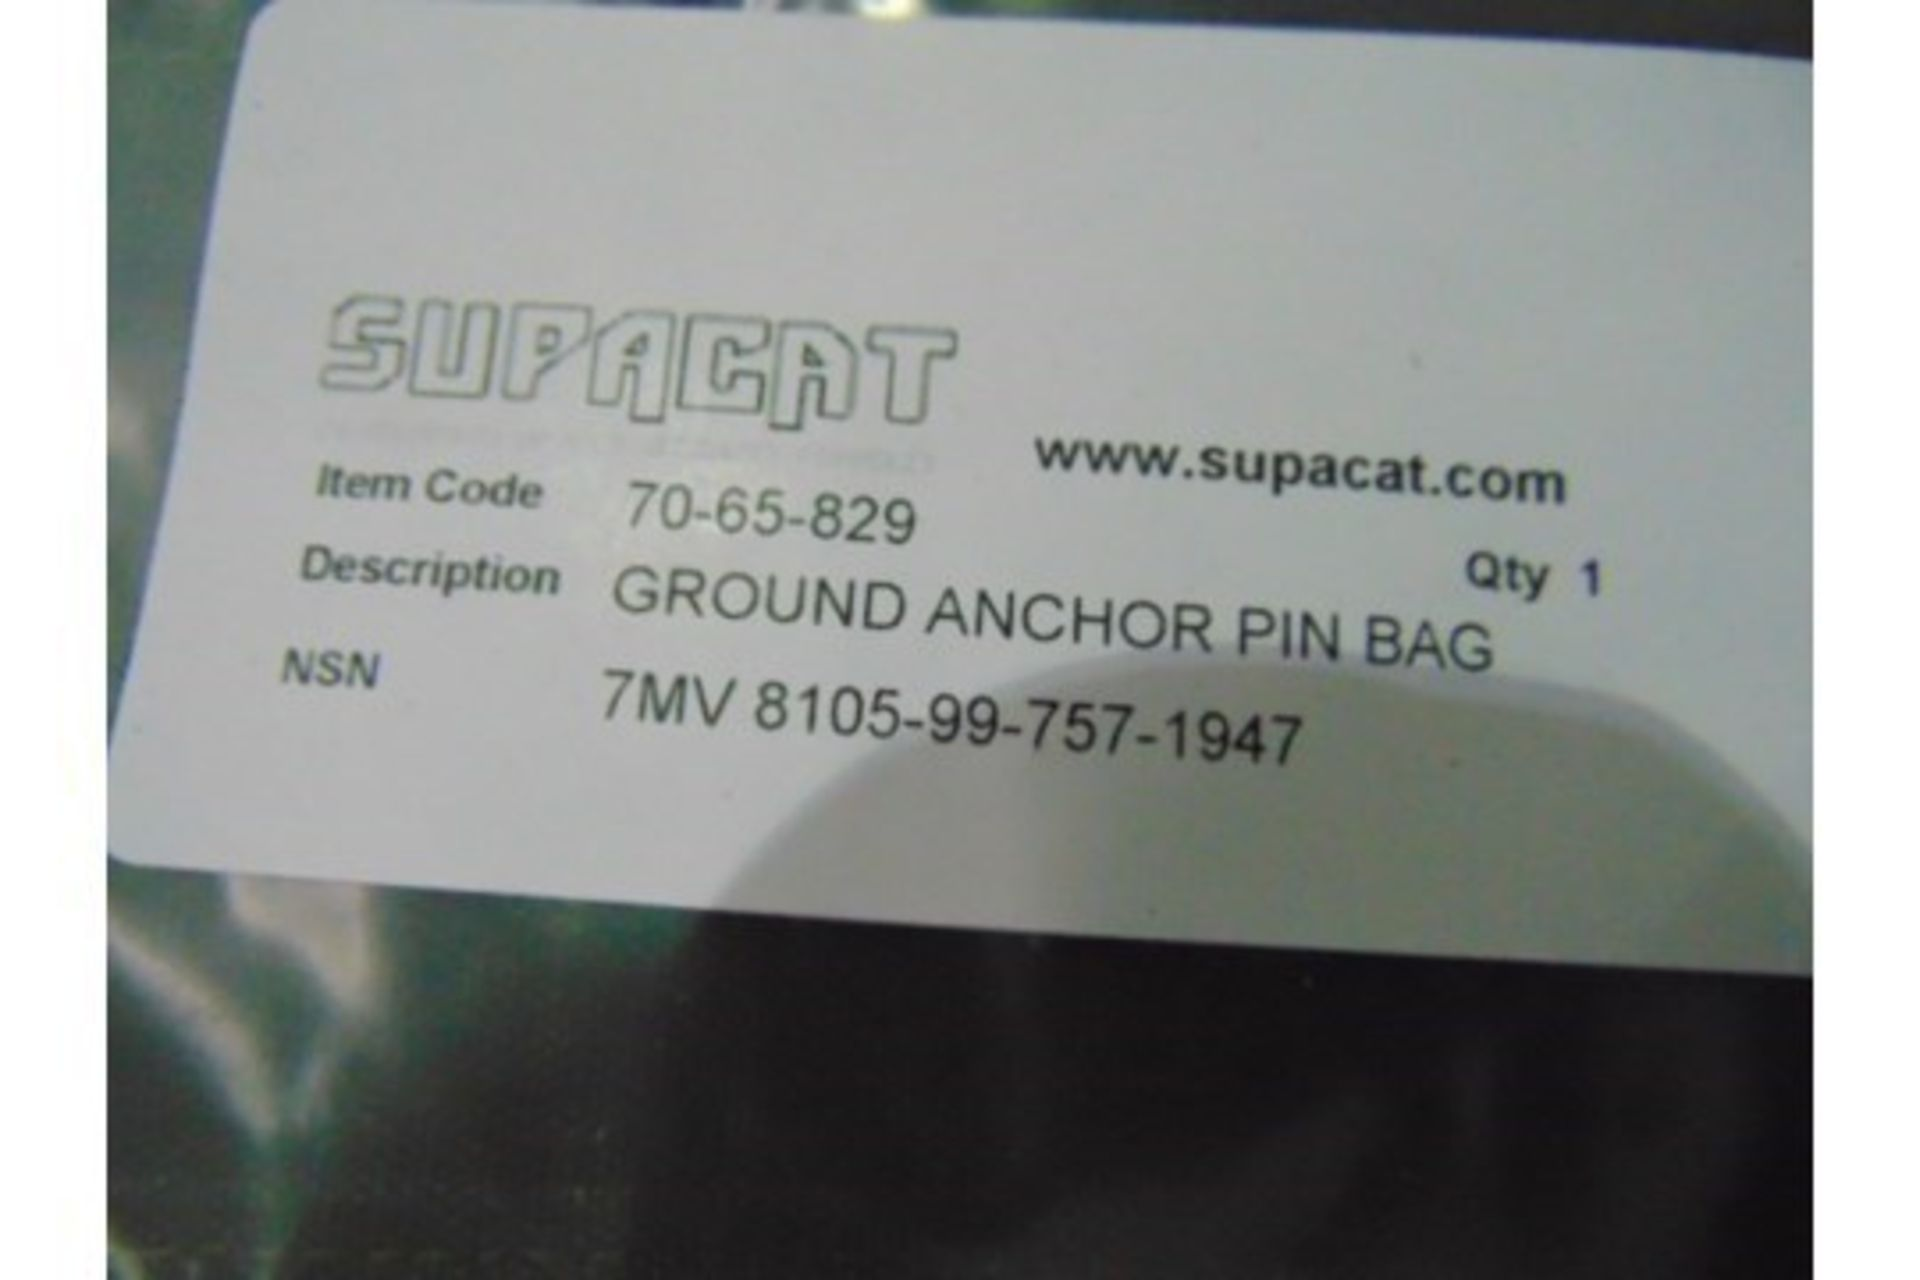 Lot 27219 - 4 x Unissued CES Equip Ground Anchor Pin Bags